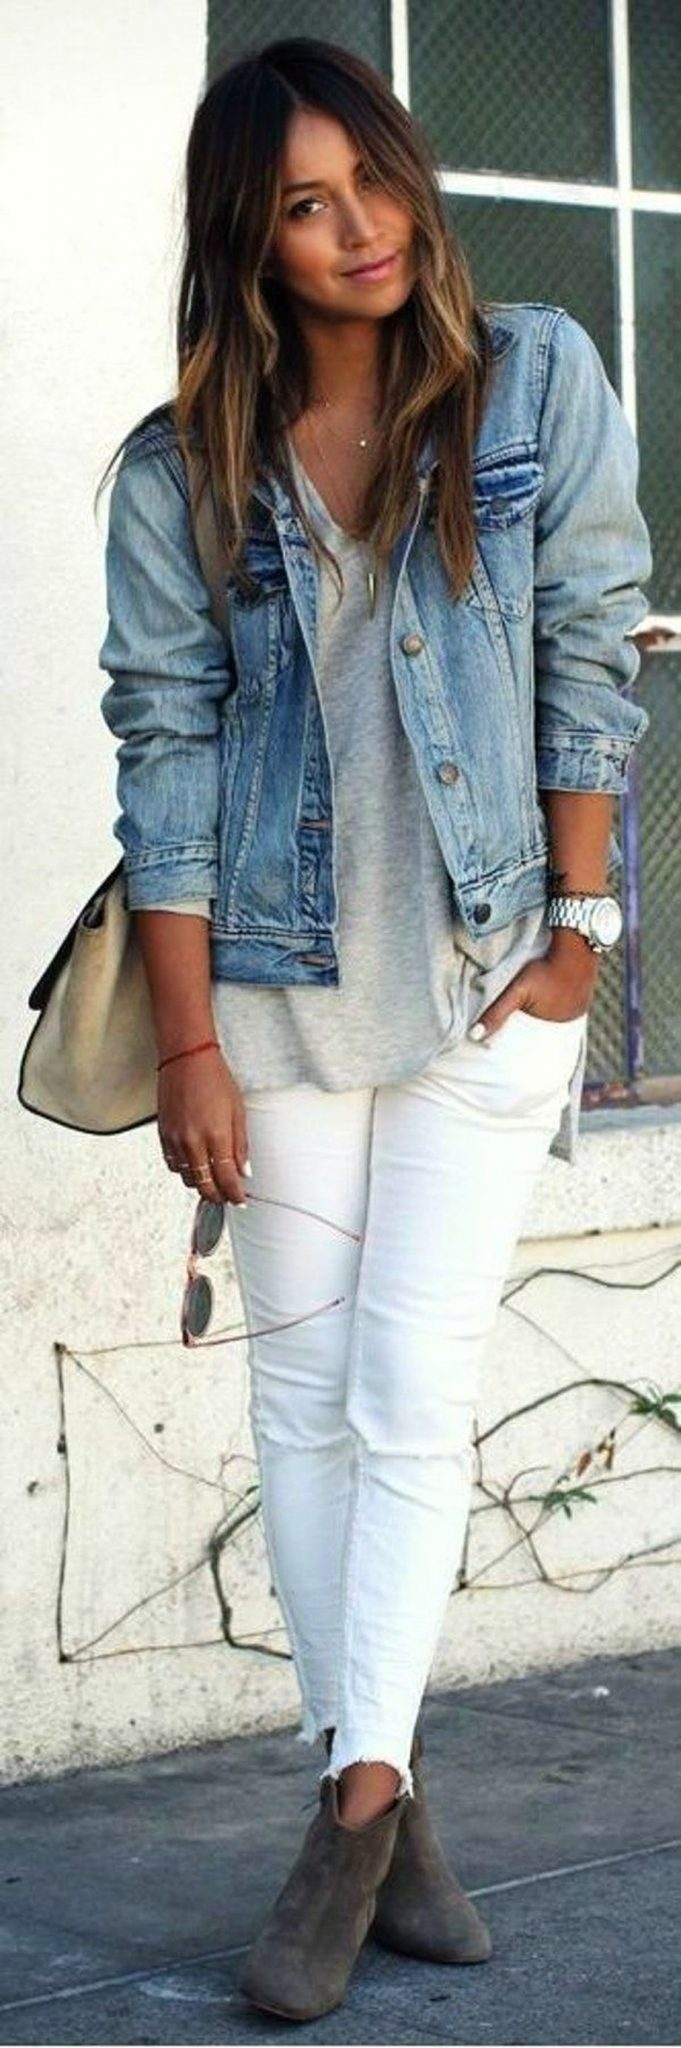 Denim Jacket Outfits Inspirations for Girl 3